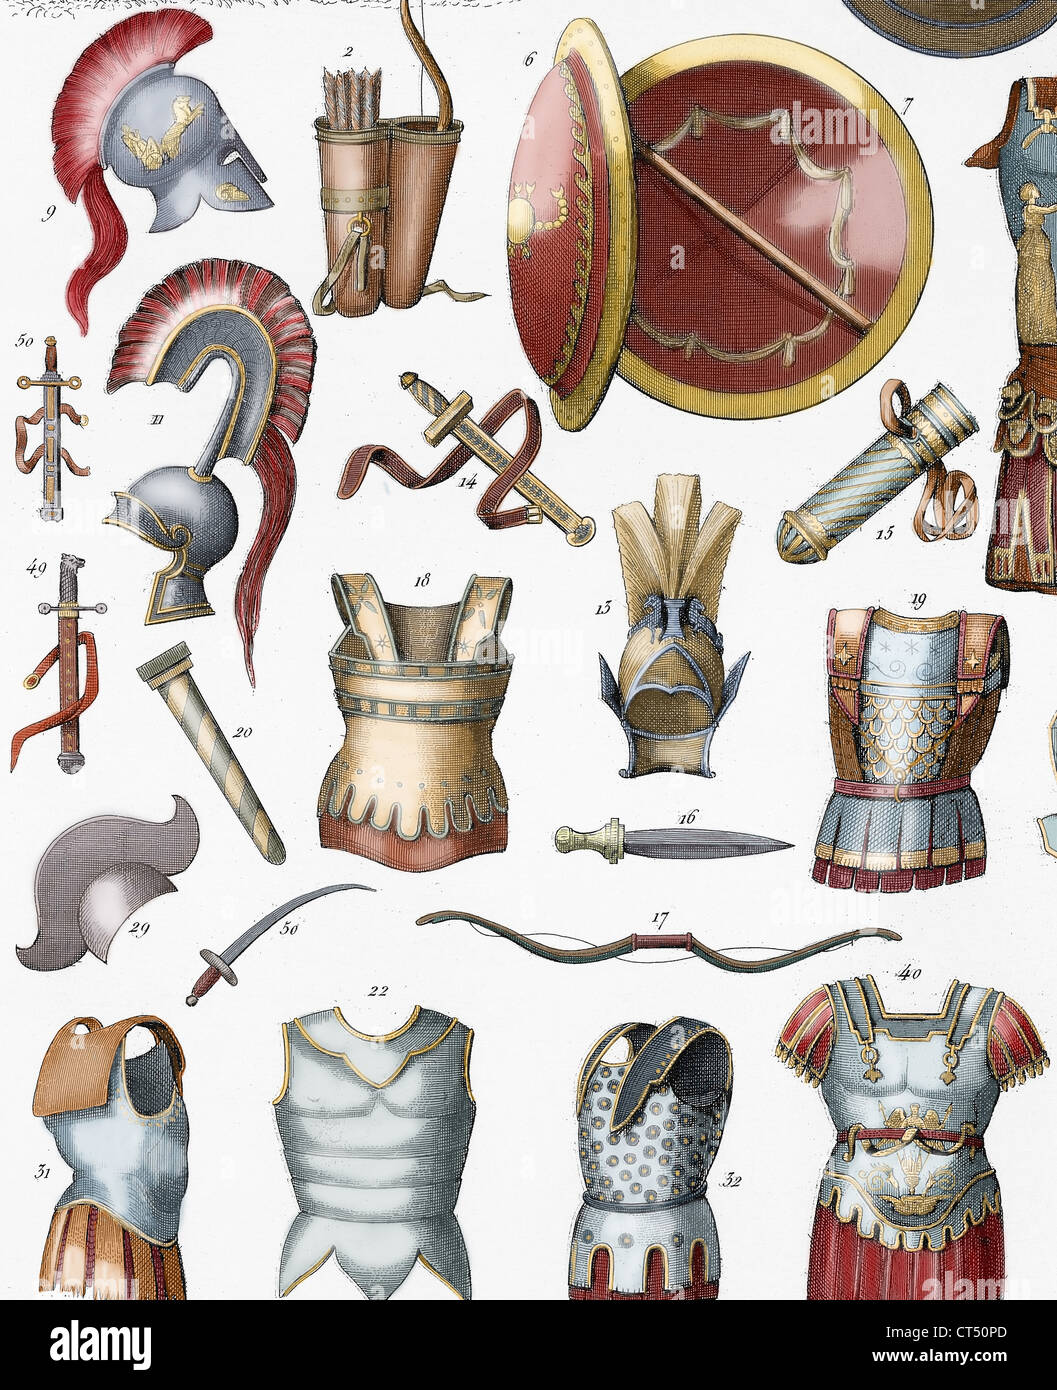 Roman army. Armors and weaponry. Colored engraving. 19th century. - Stock Image